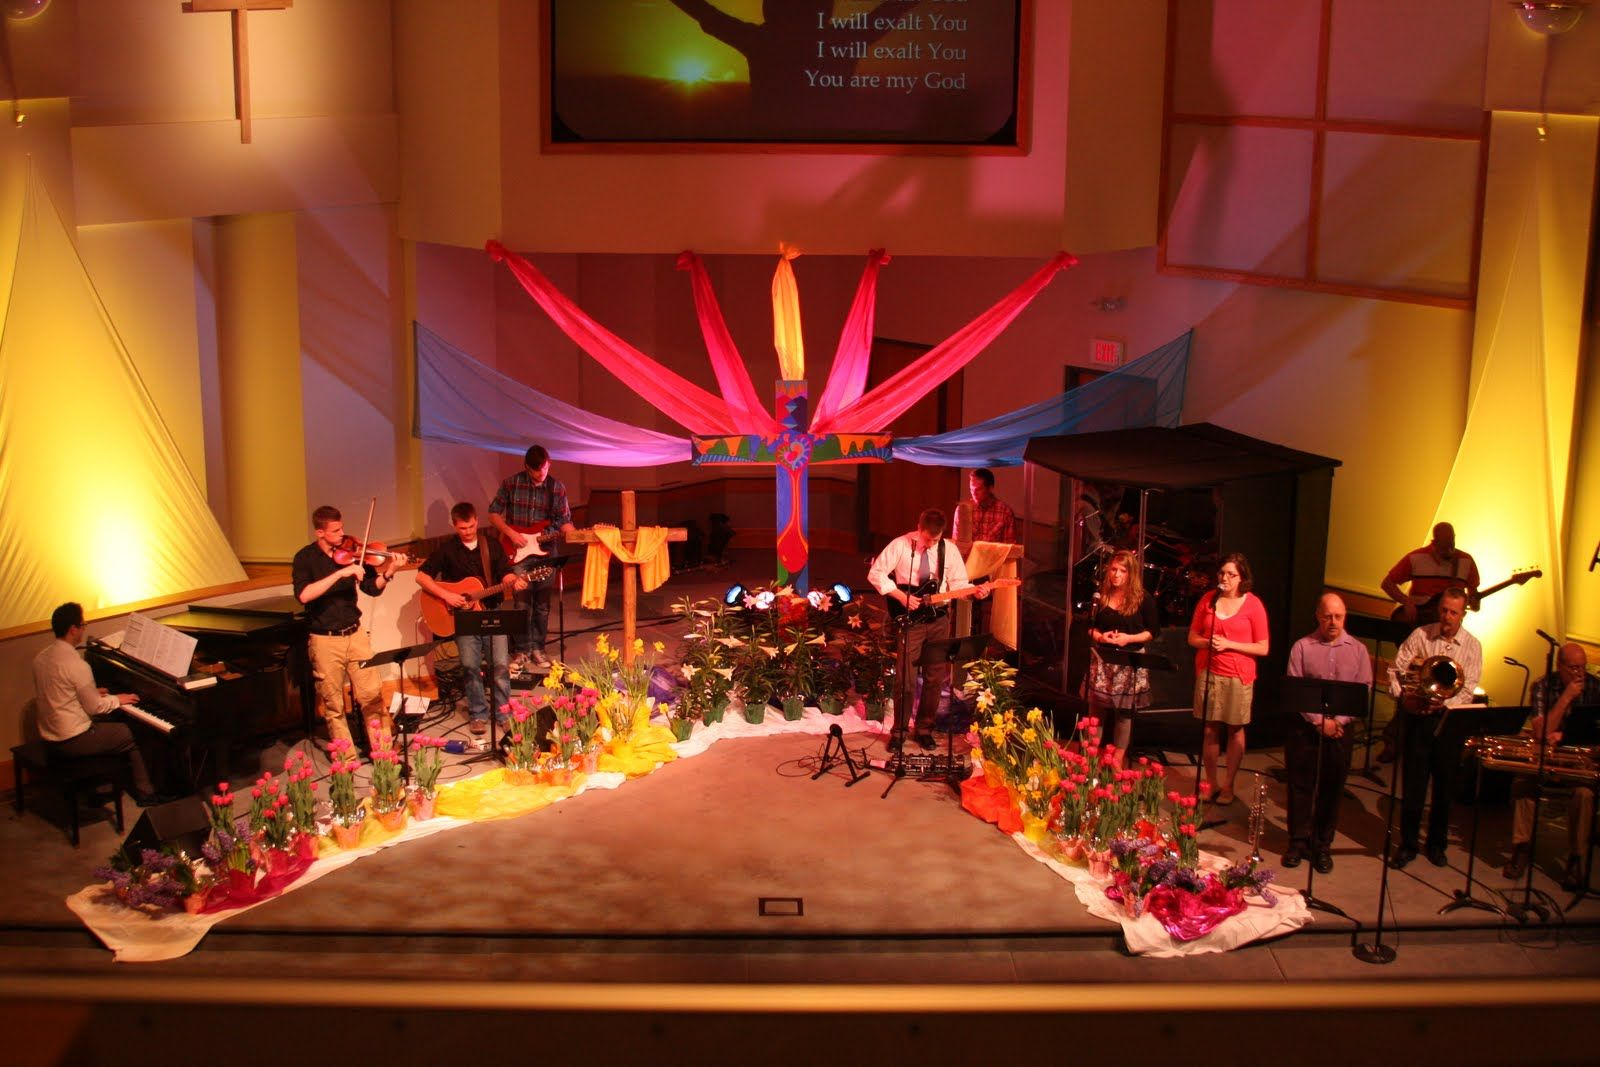 Easter Decorating Ideas For Church christmas stage set ideas | church stage decorating ideas plastic